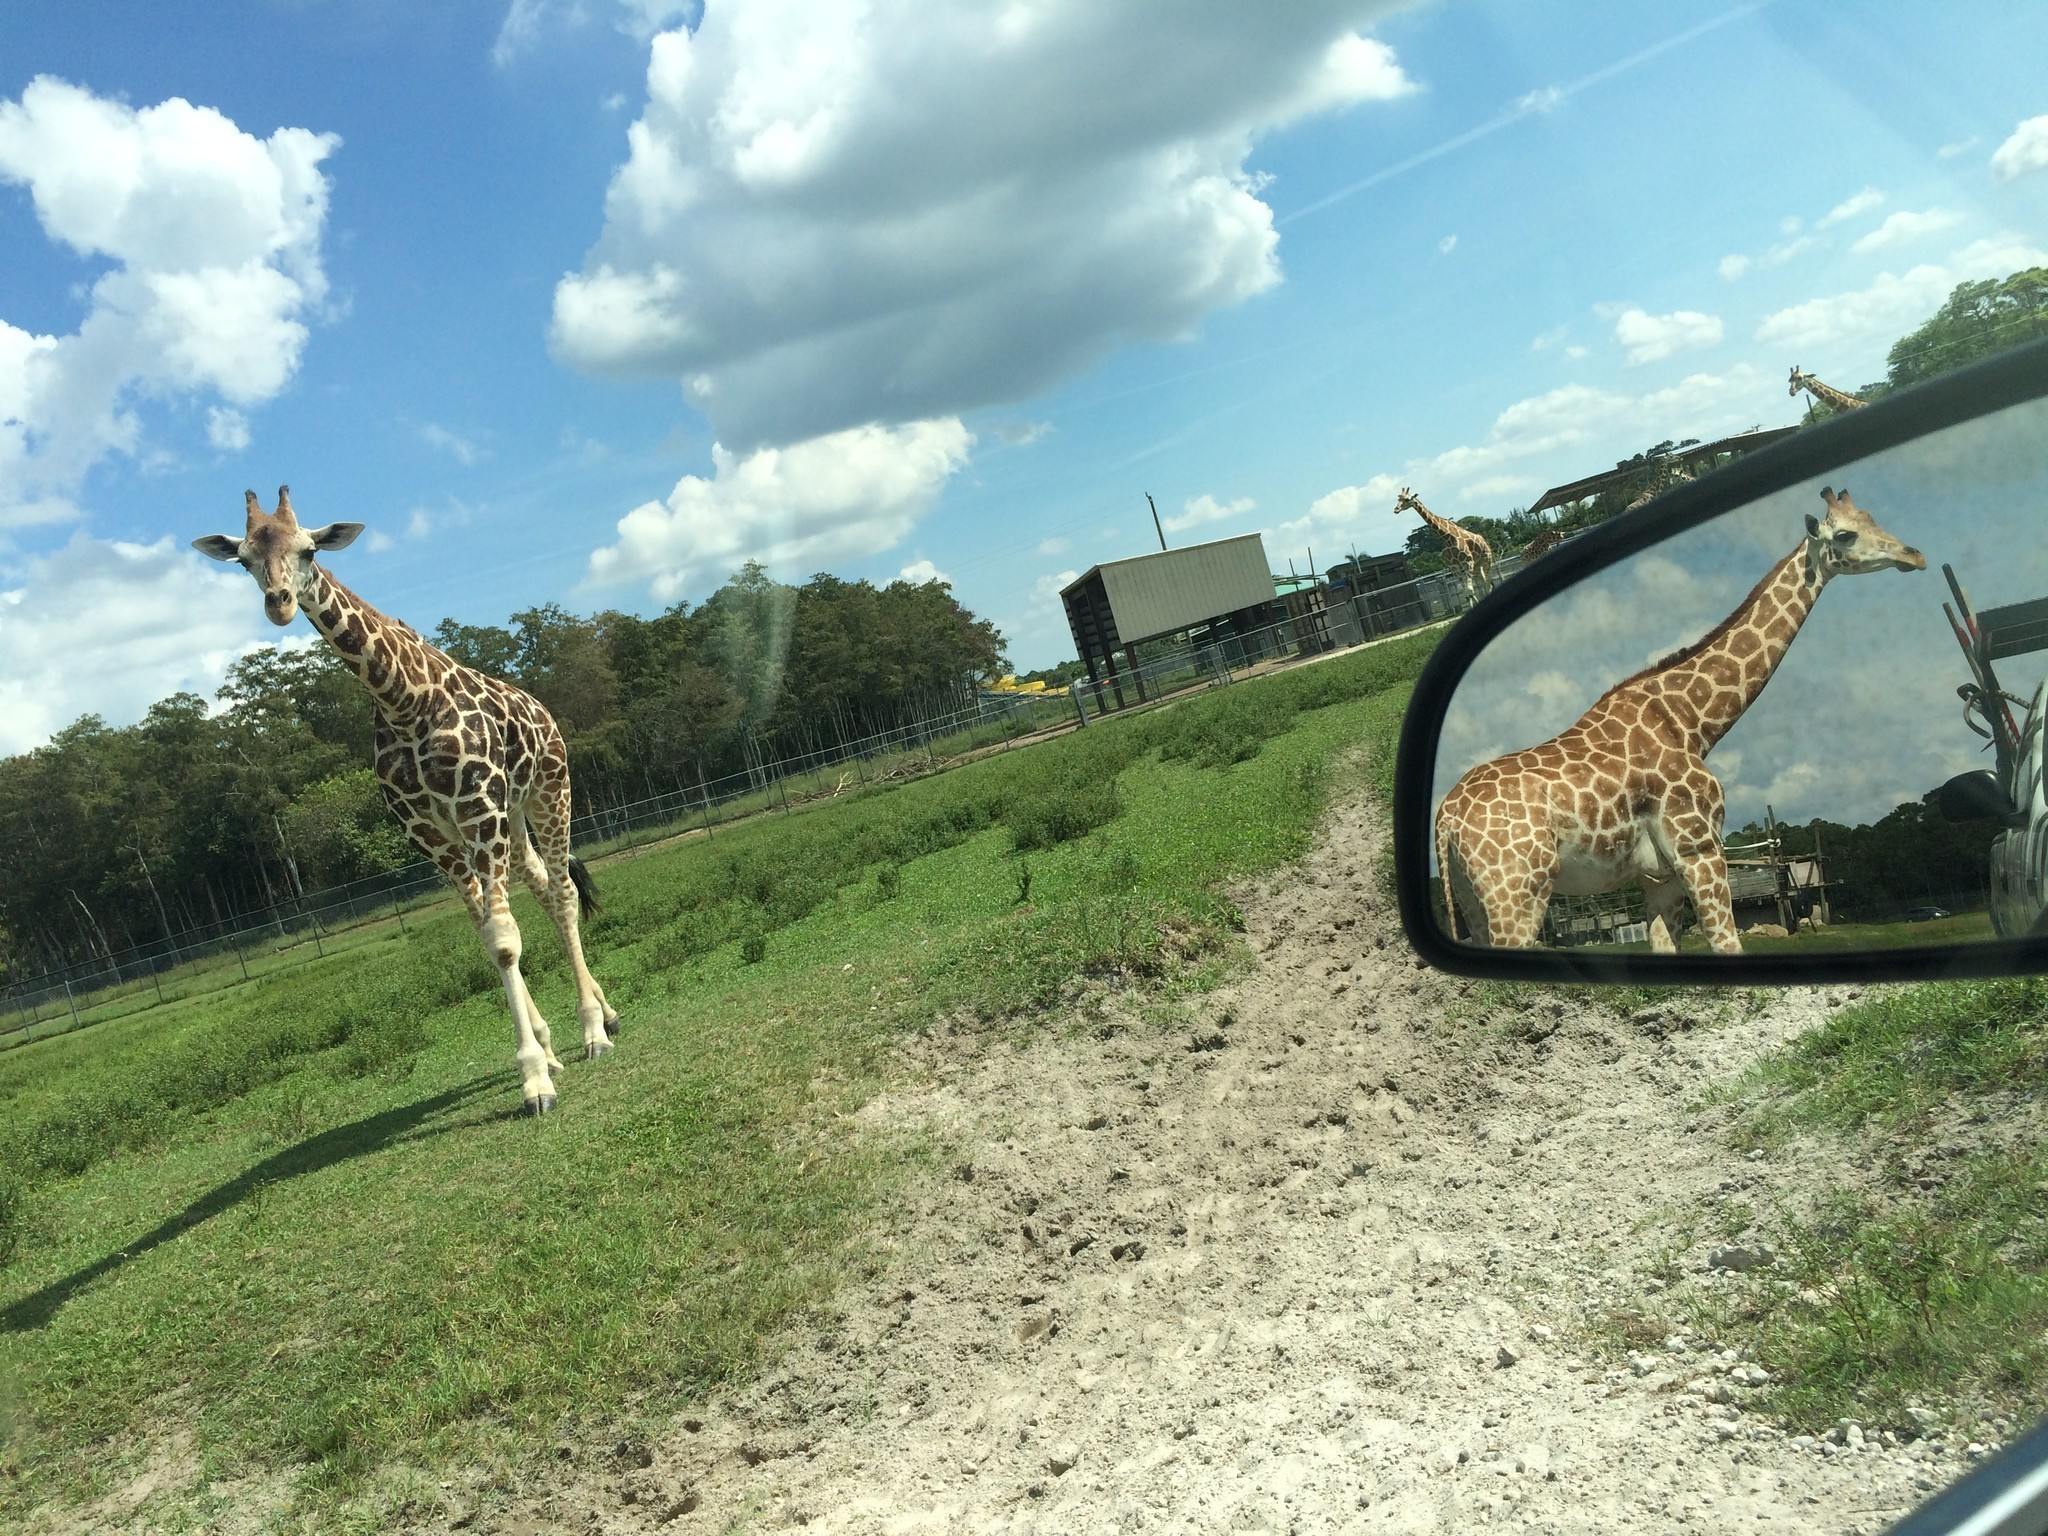 Get your wild side on in Palm Beach County - Orlando Sentinel